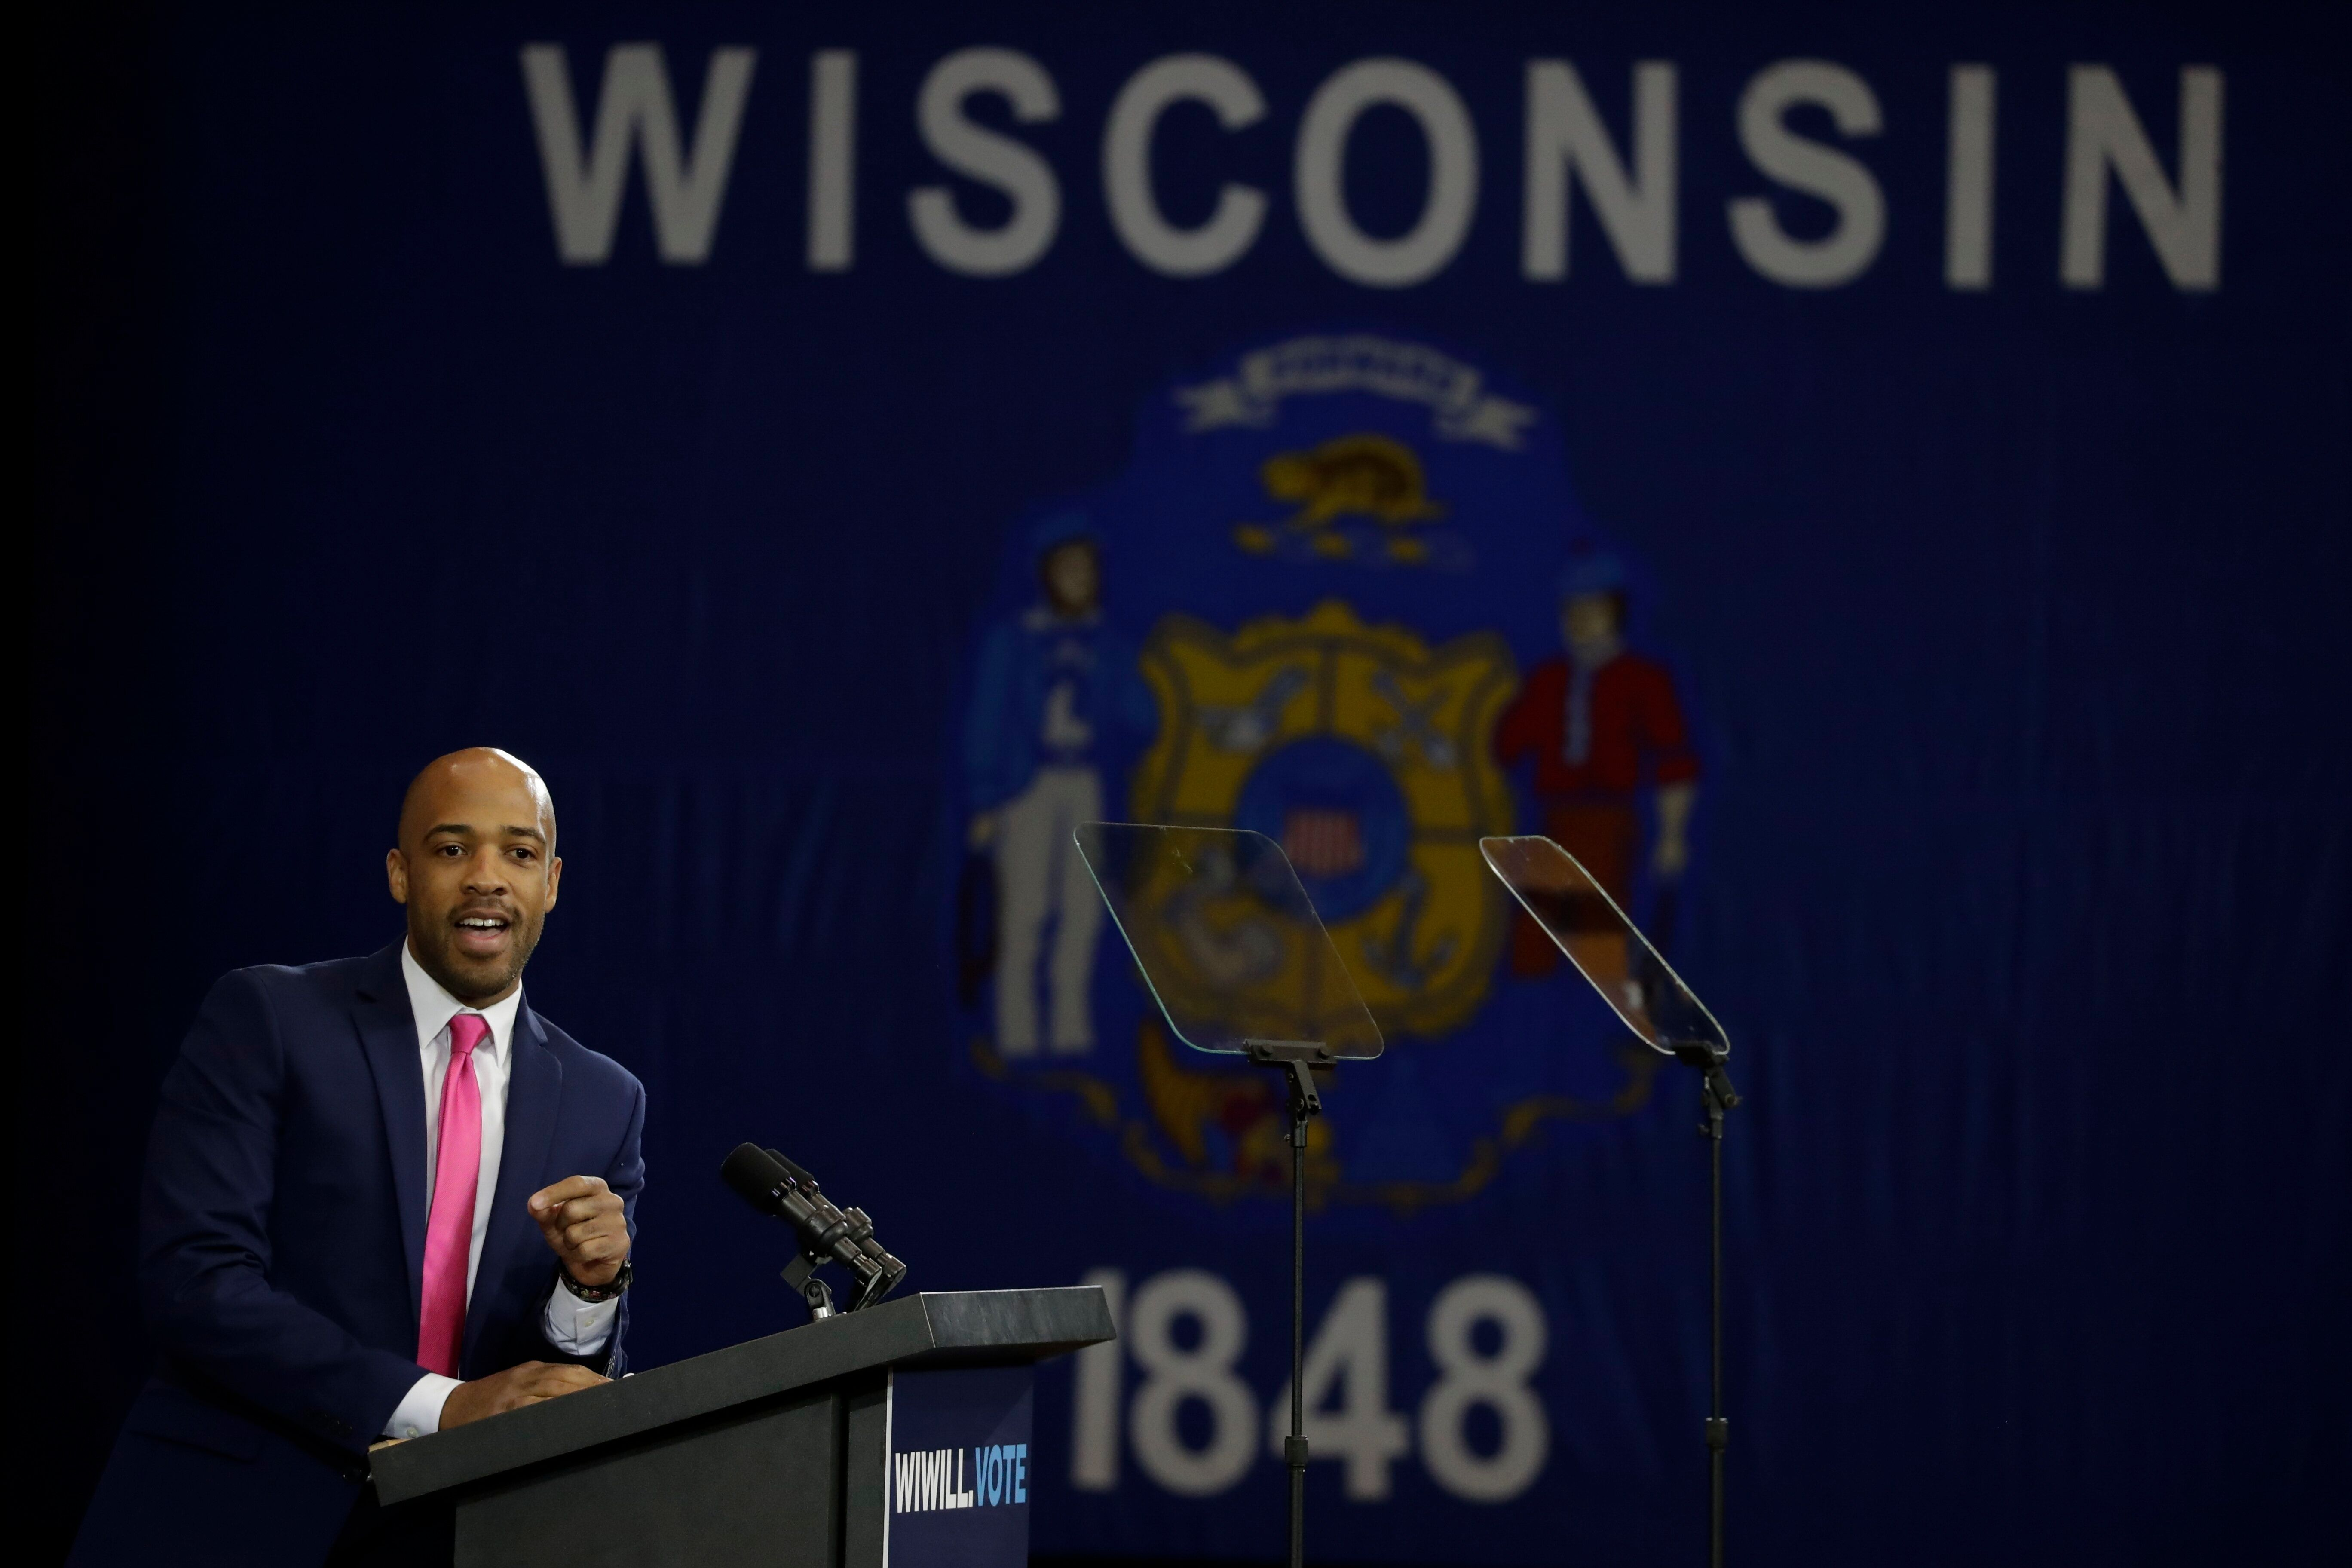 Wisconsin Lt. Gov. Mandela Barnes was under consideration for a post in the Biden administration. Now his sights are set on a